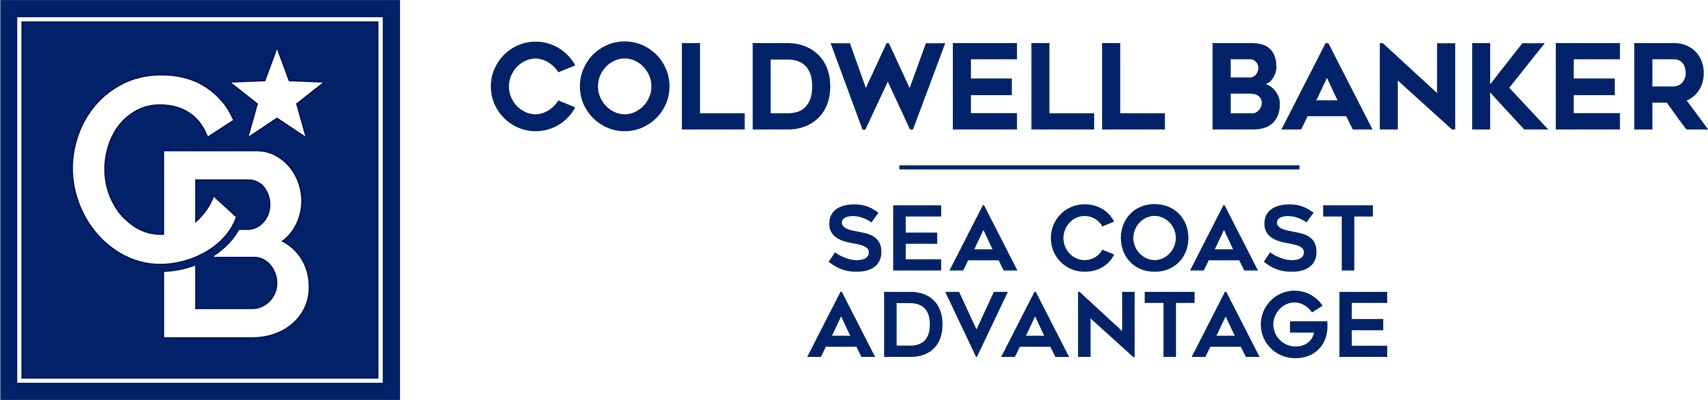 Irina Stocker - Coldwell Banker Sea Coast Advantage Realty Logo